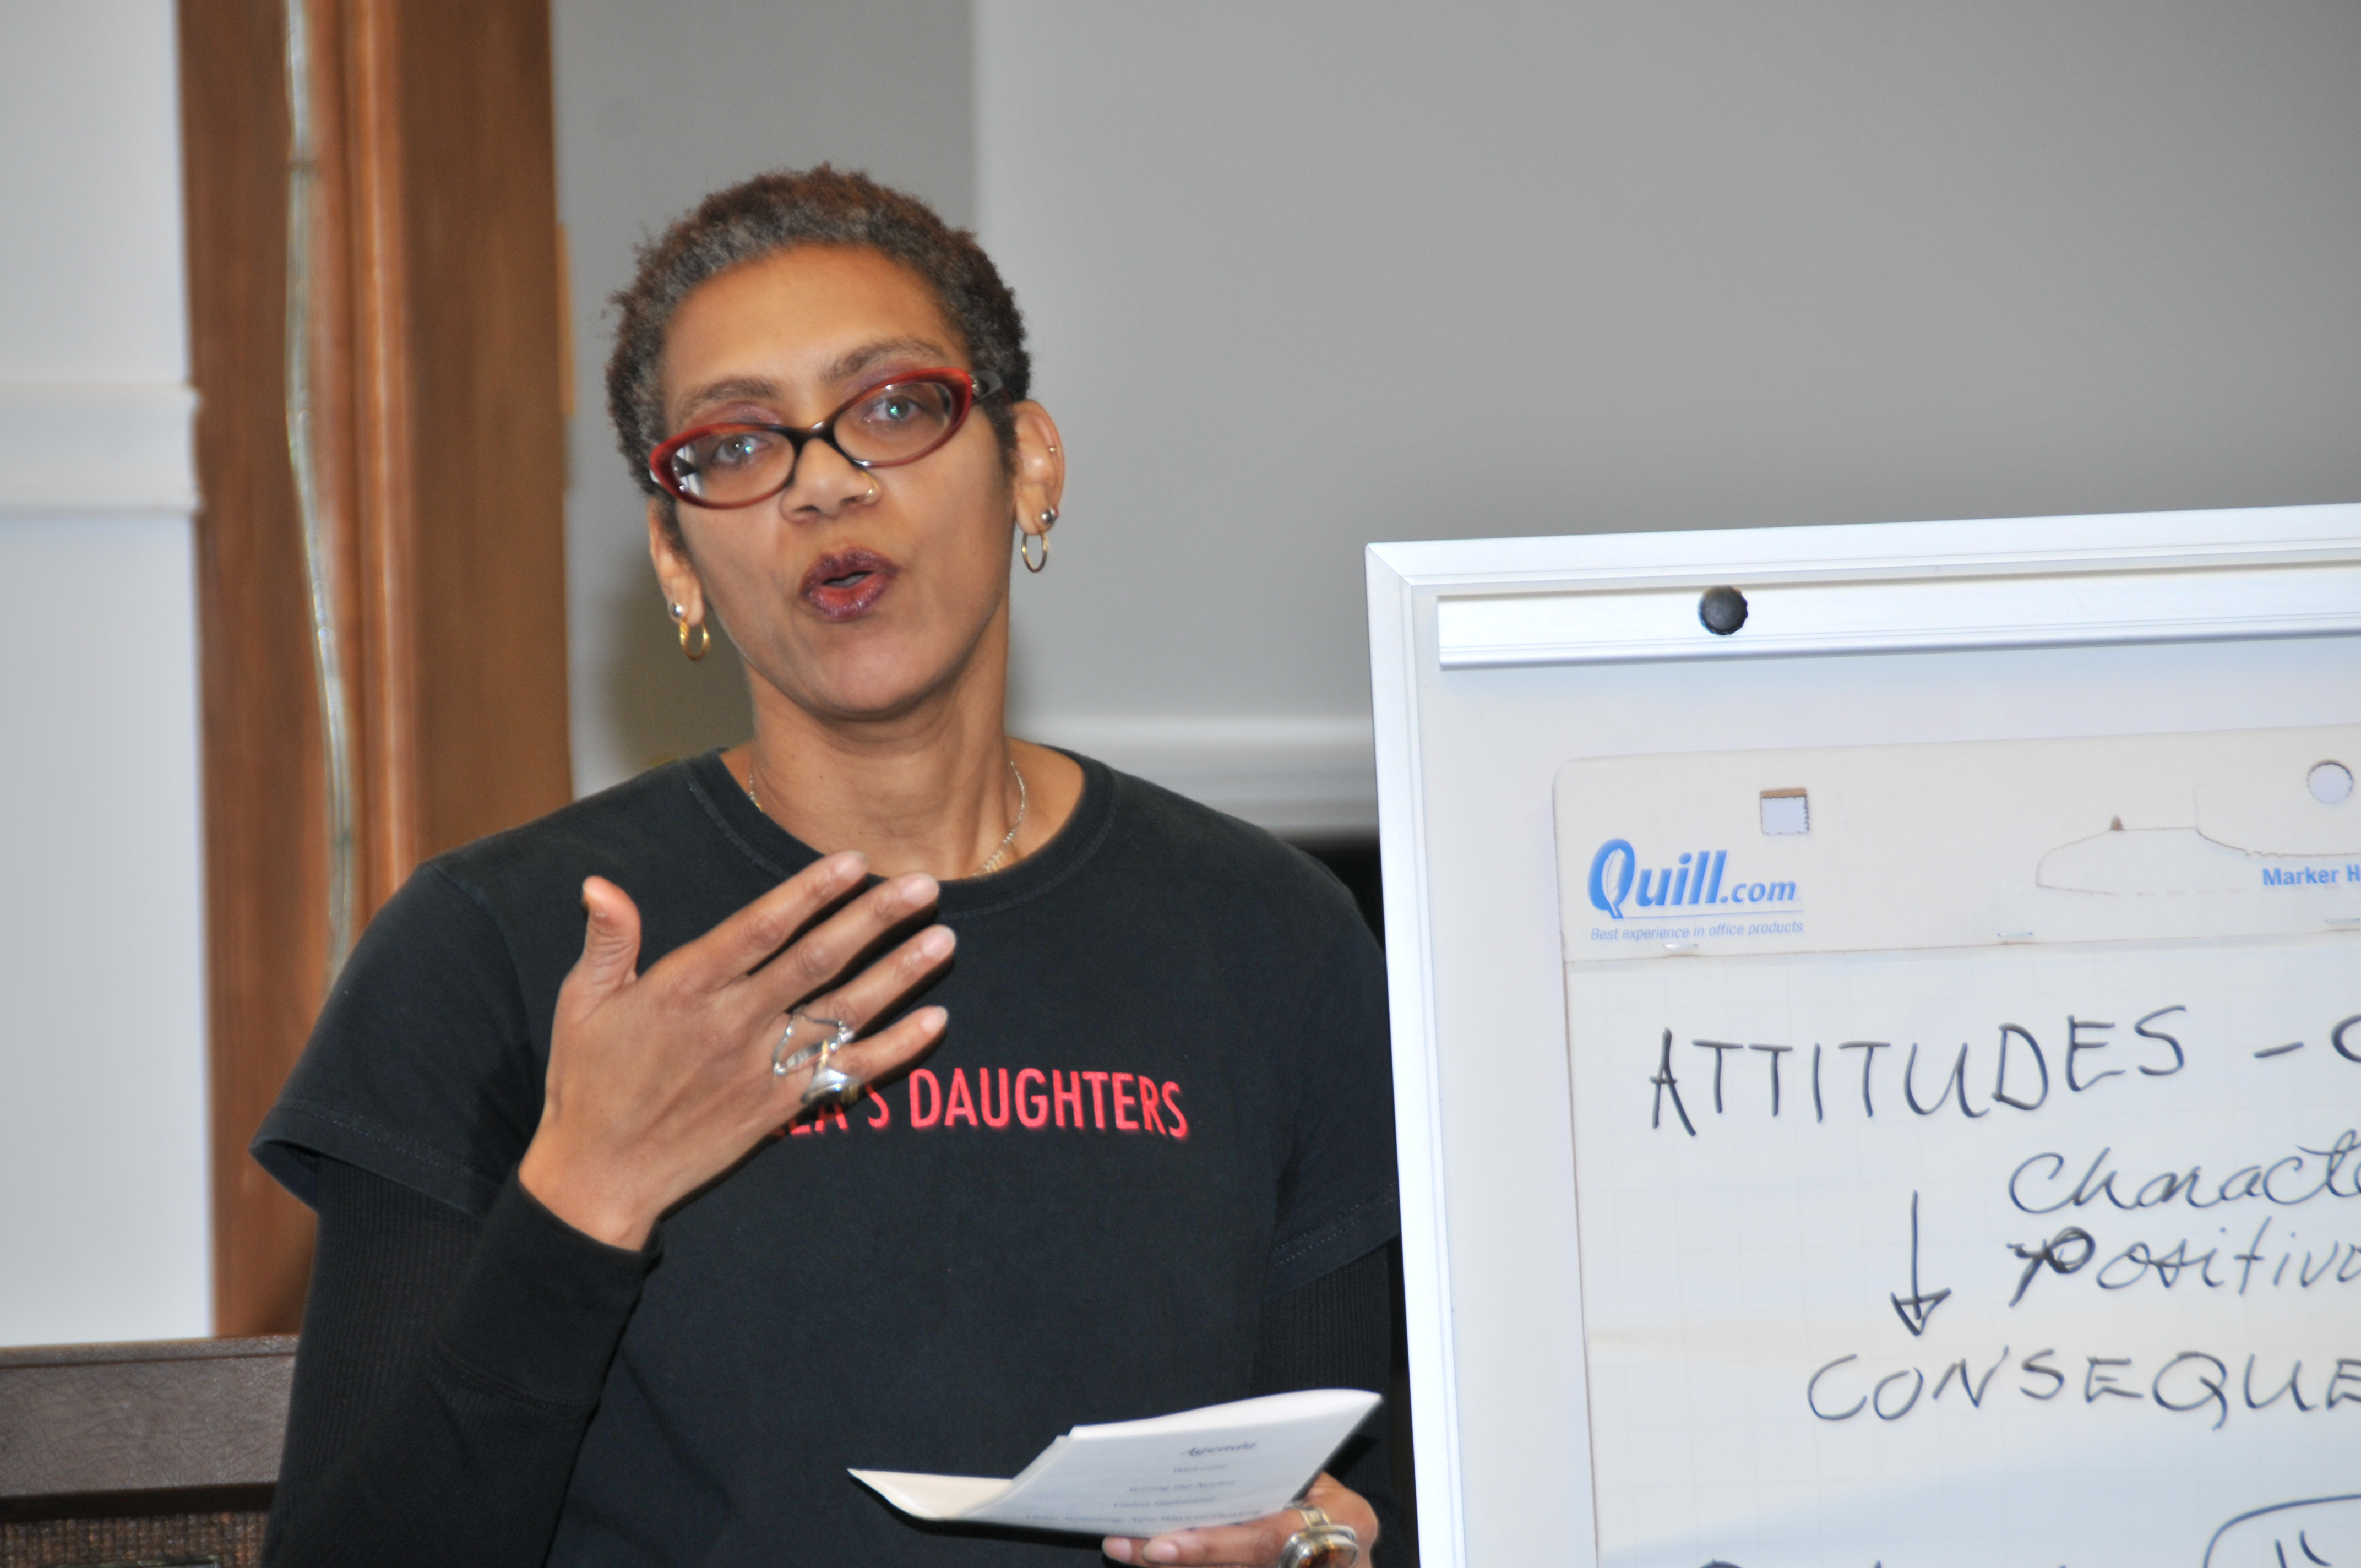 In February 2014, Rhonda Williams facilitated a discussion at the East Cleveland Public Library in which residents articulated their hopes for their community. The event was part of the Social Justice Institute's Voicing and Action Project.